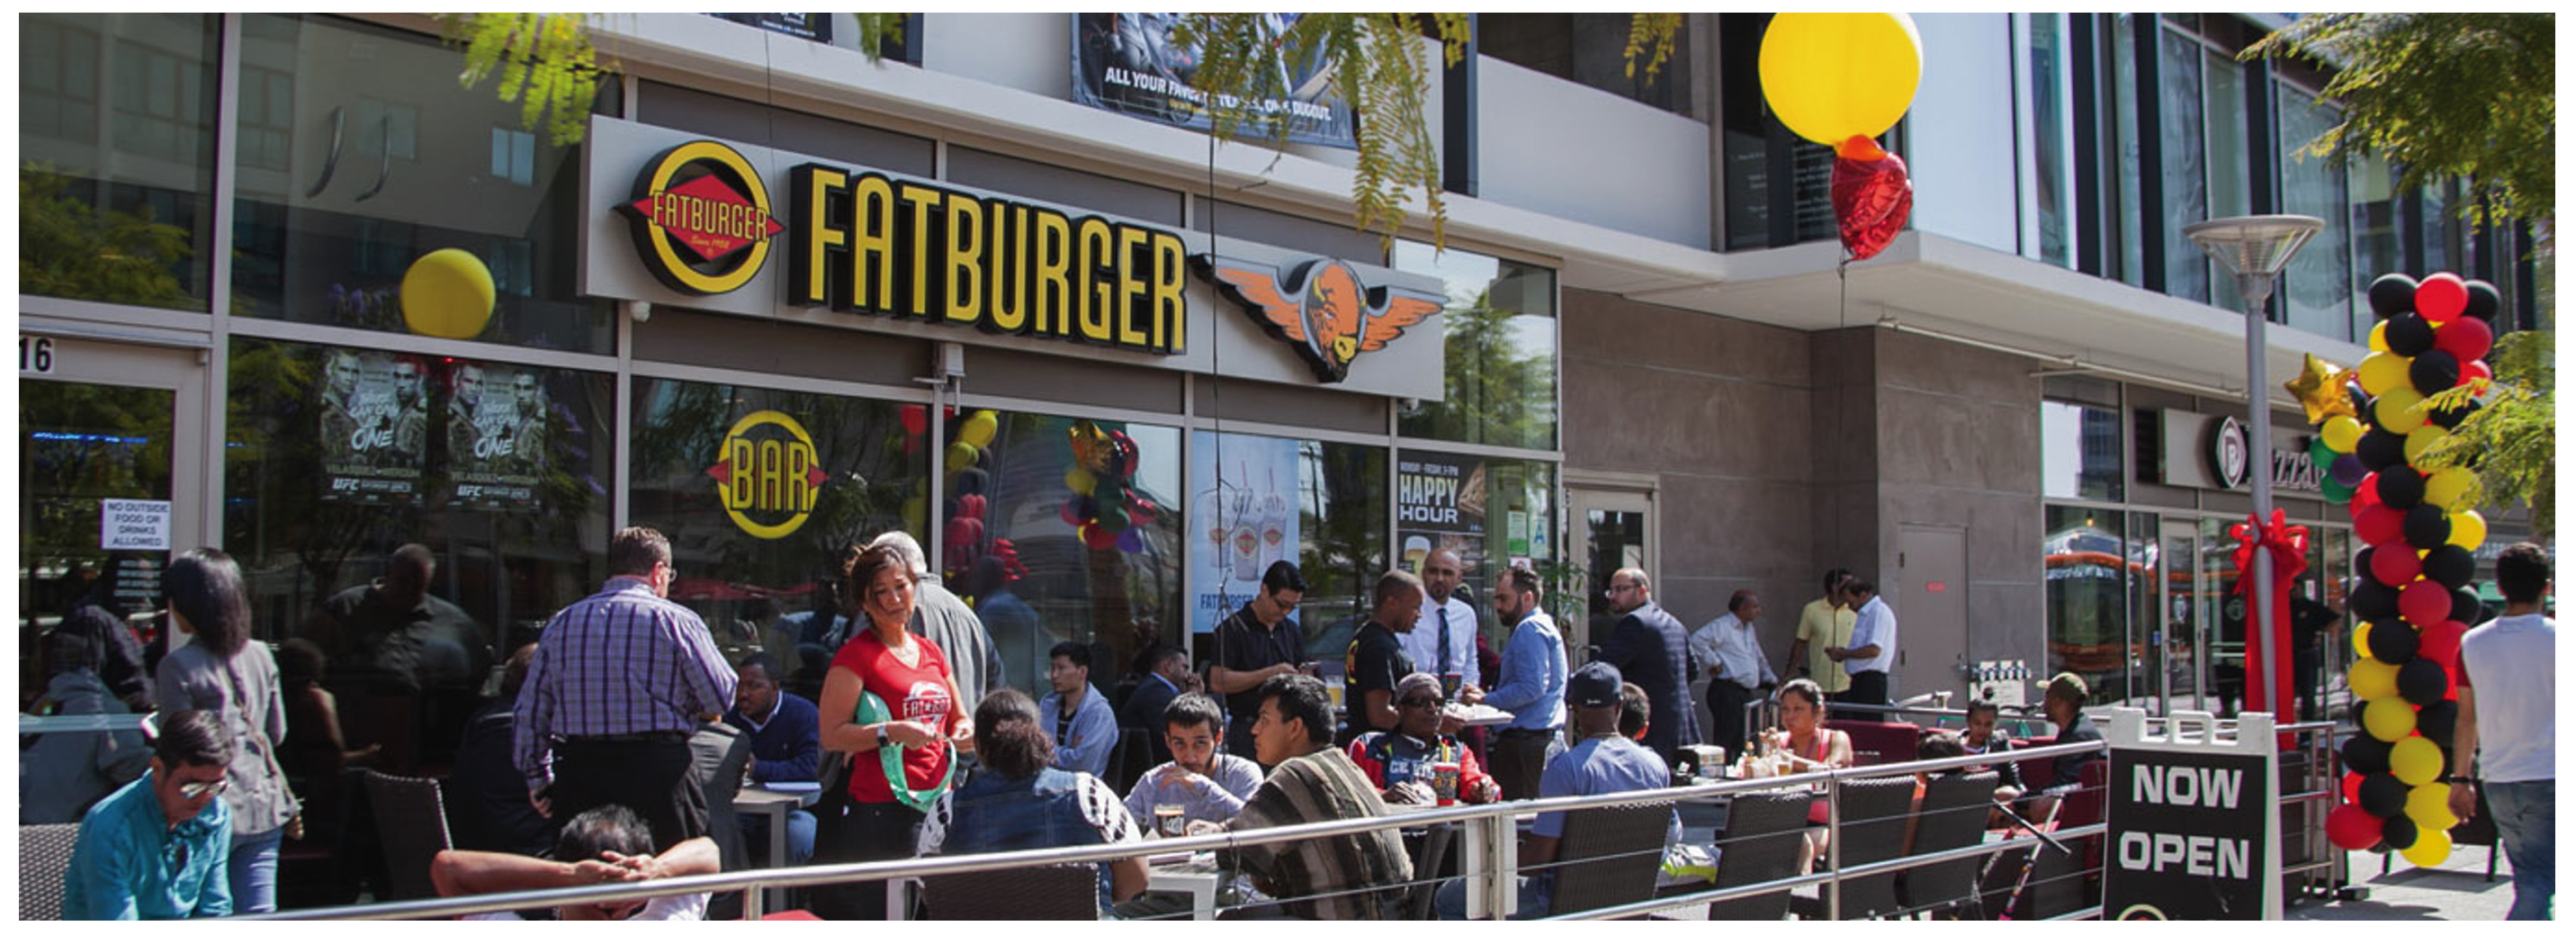 Image of Fatburger & Buffalo's Wilshire & Vermont